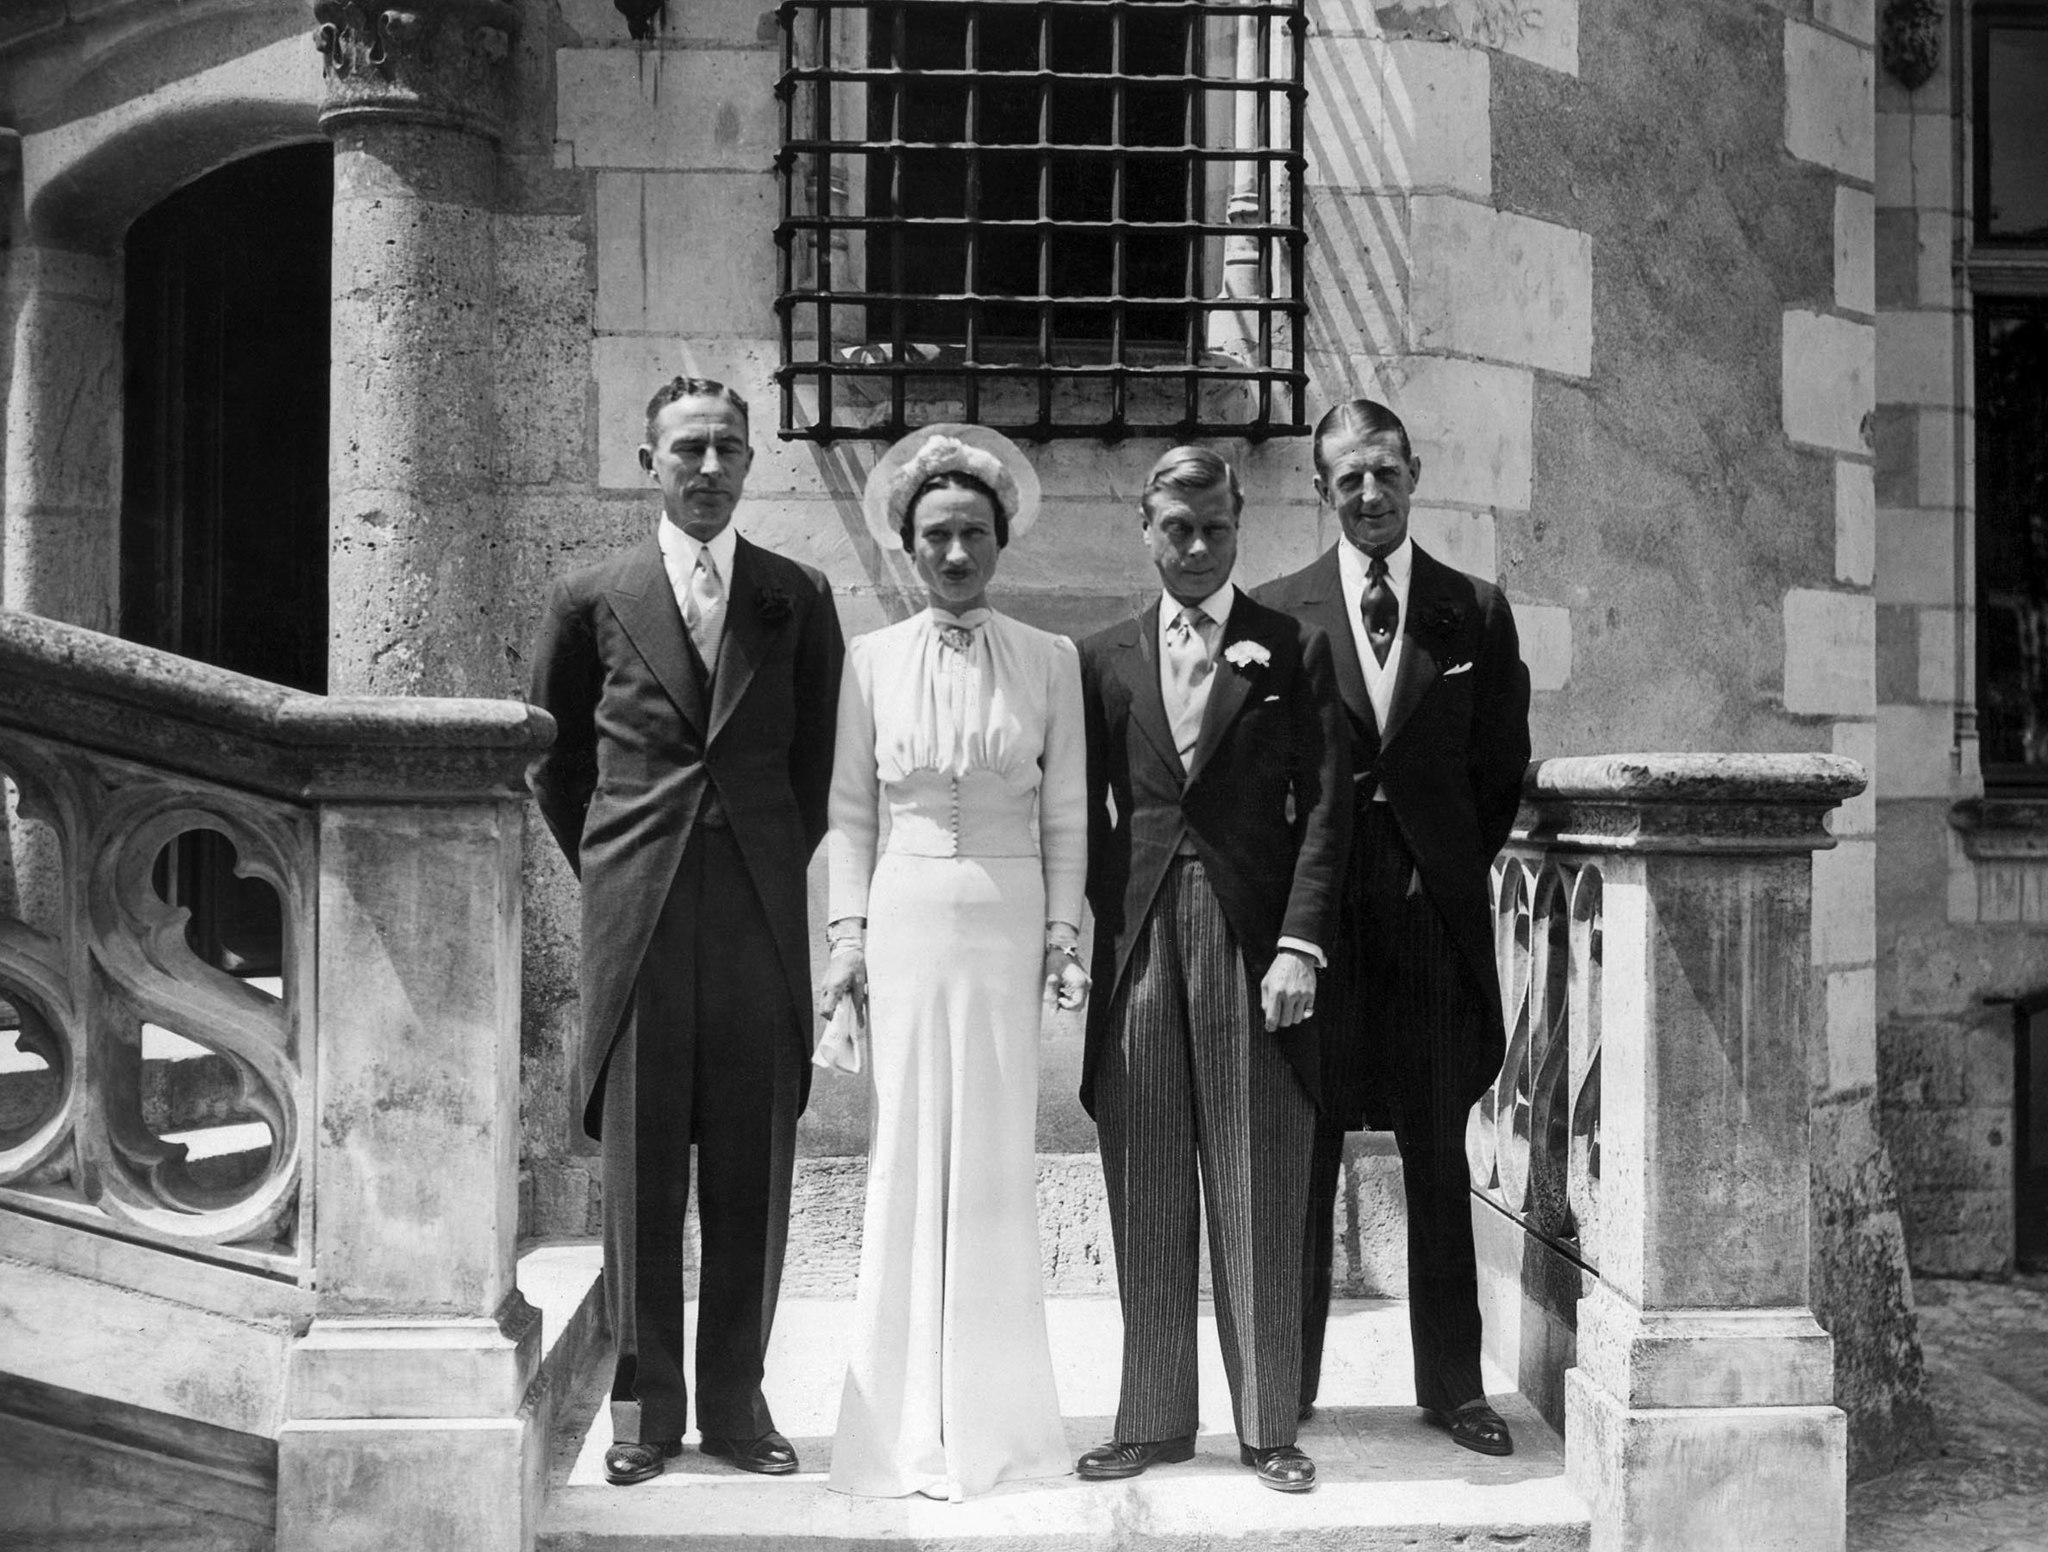 Prince Edward, Wallis Simpson